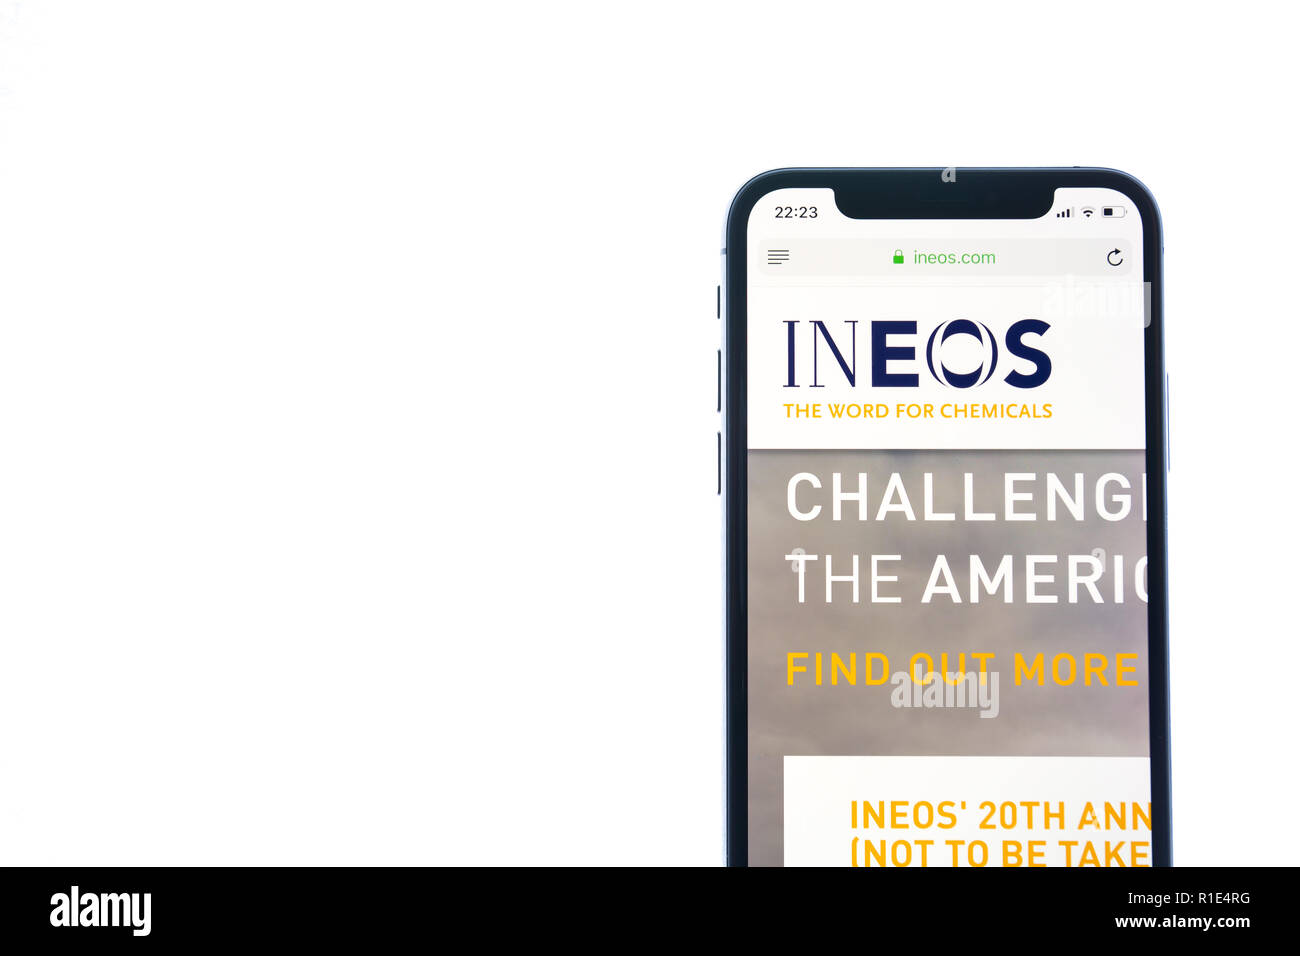 SOLOTHURN, SWITZERLAND - NOVEMBER 11, 2018: Ineos logo displayed on a modern smartphone - Stock Image